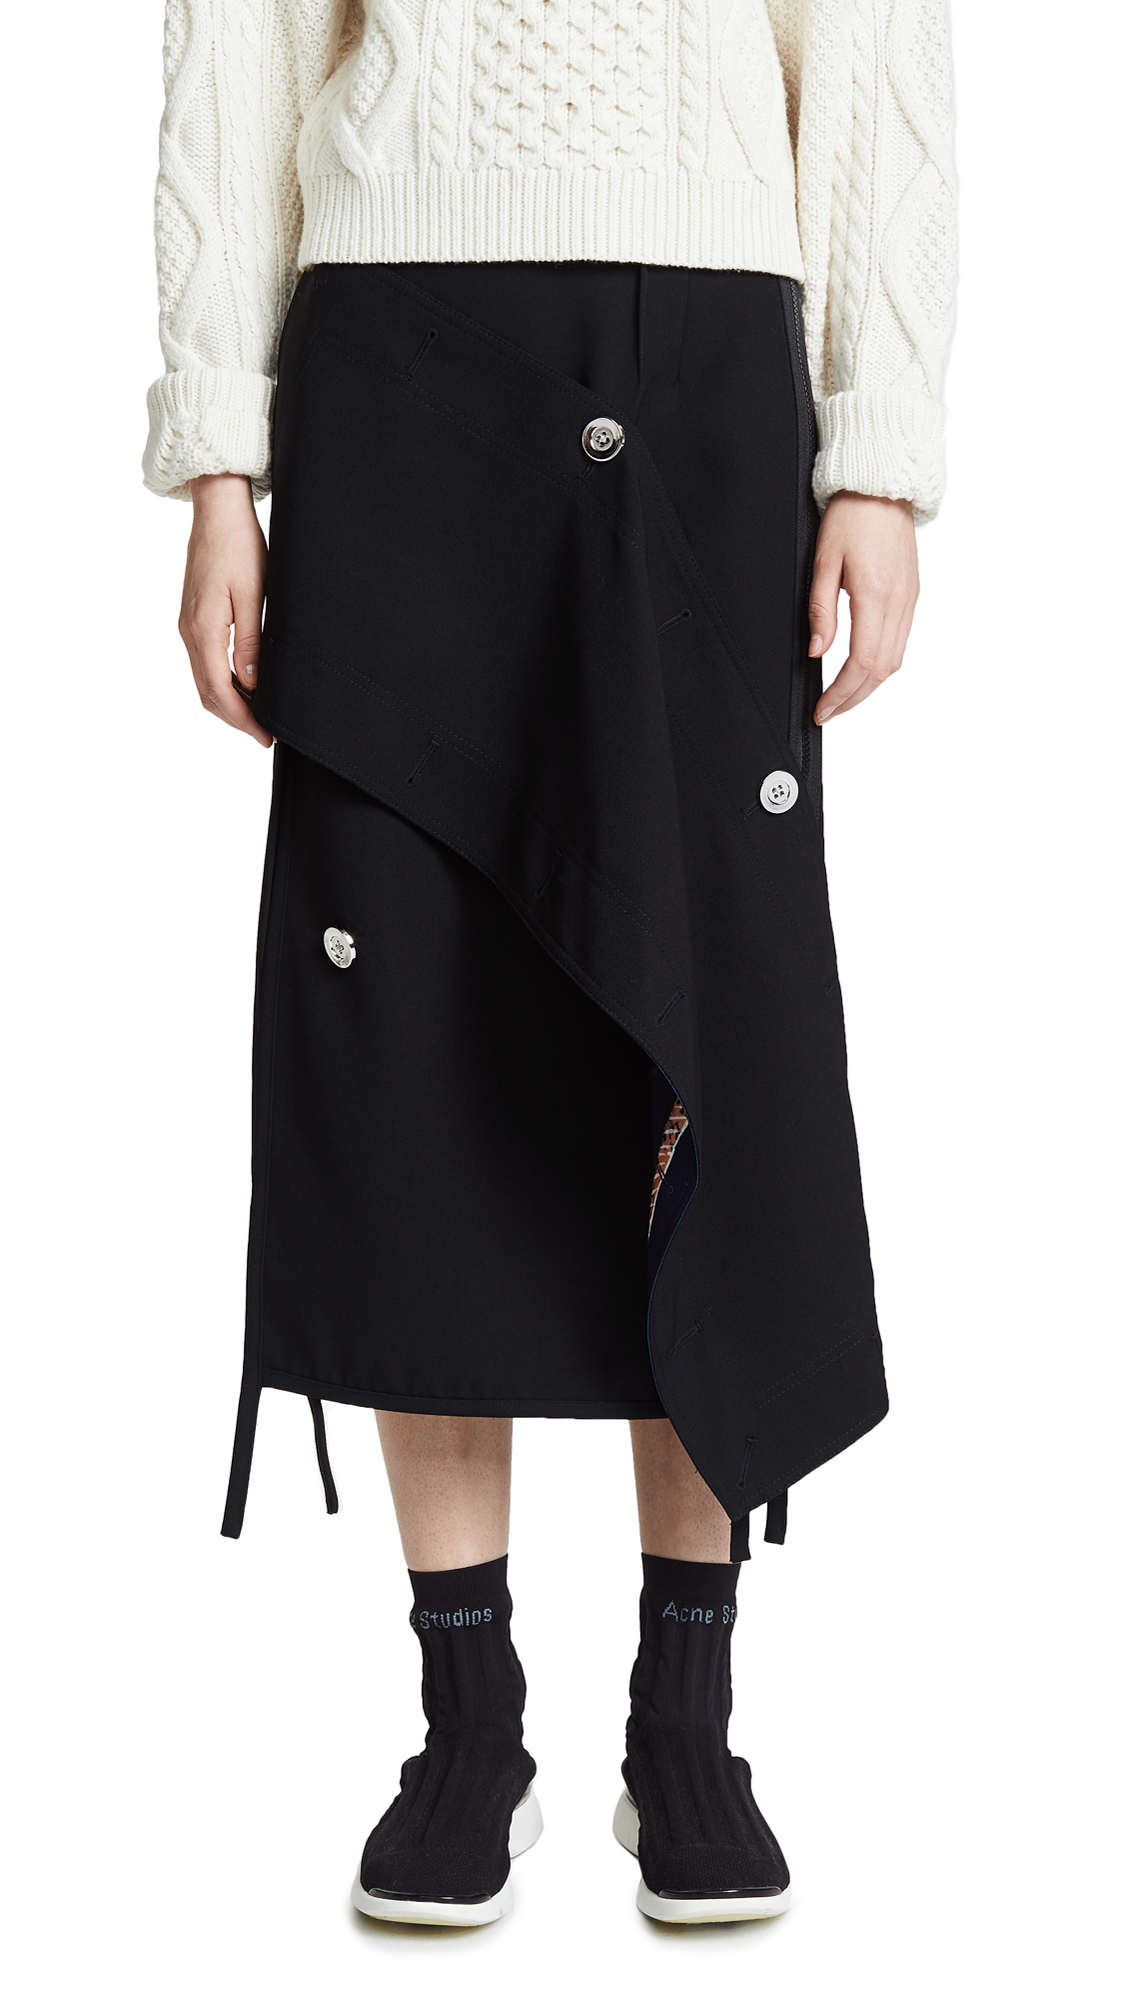 3.1 Phillip Lim Asymmetrical Wool Skirt In Black